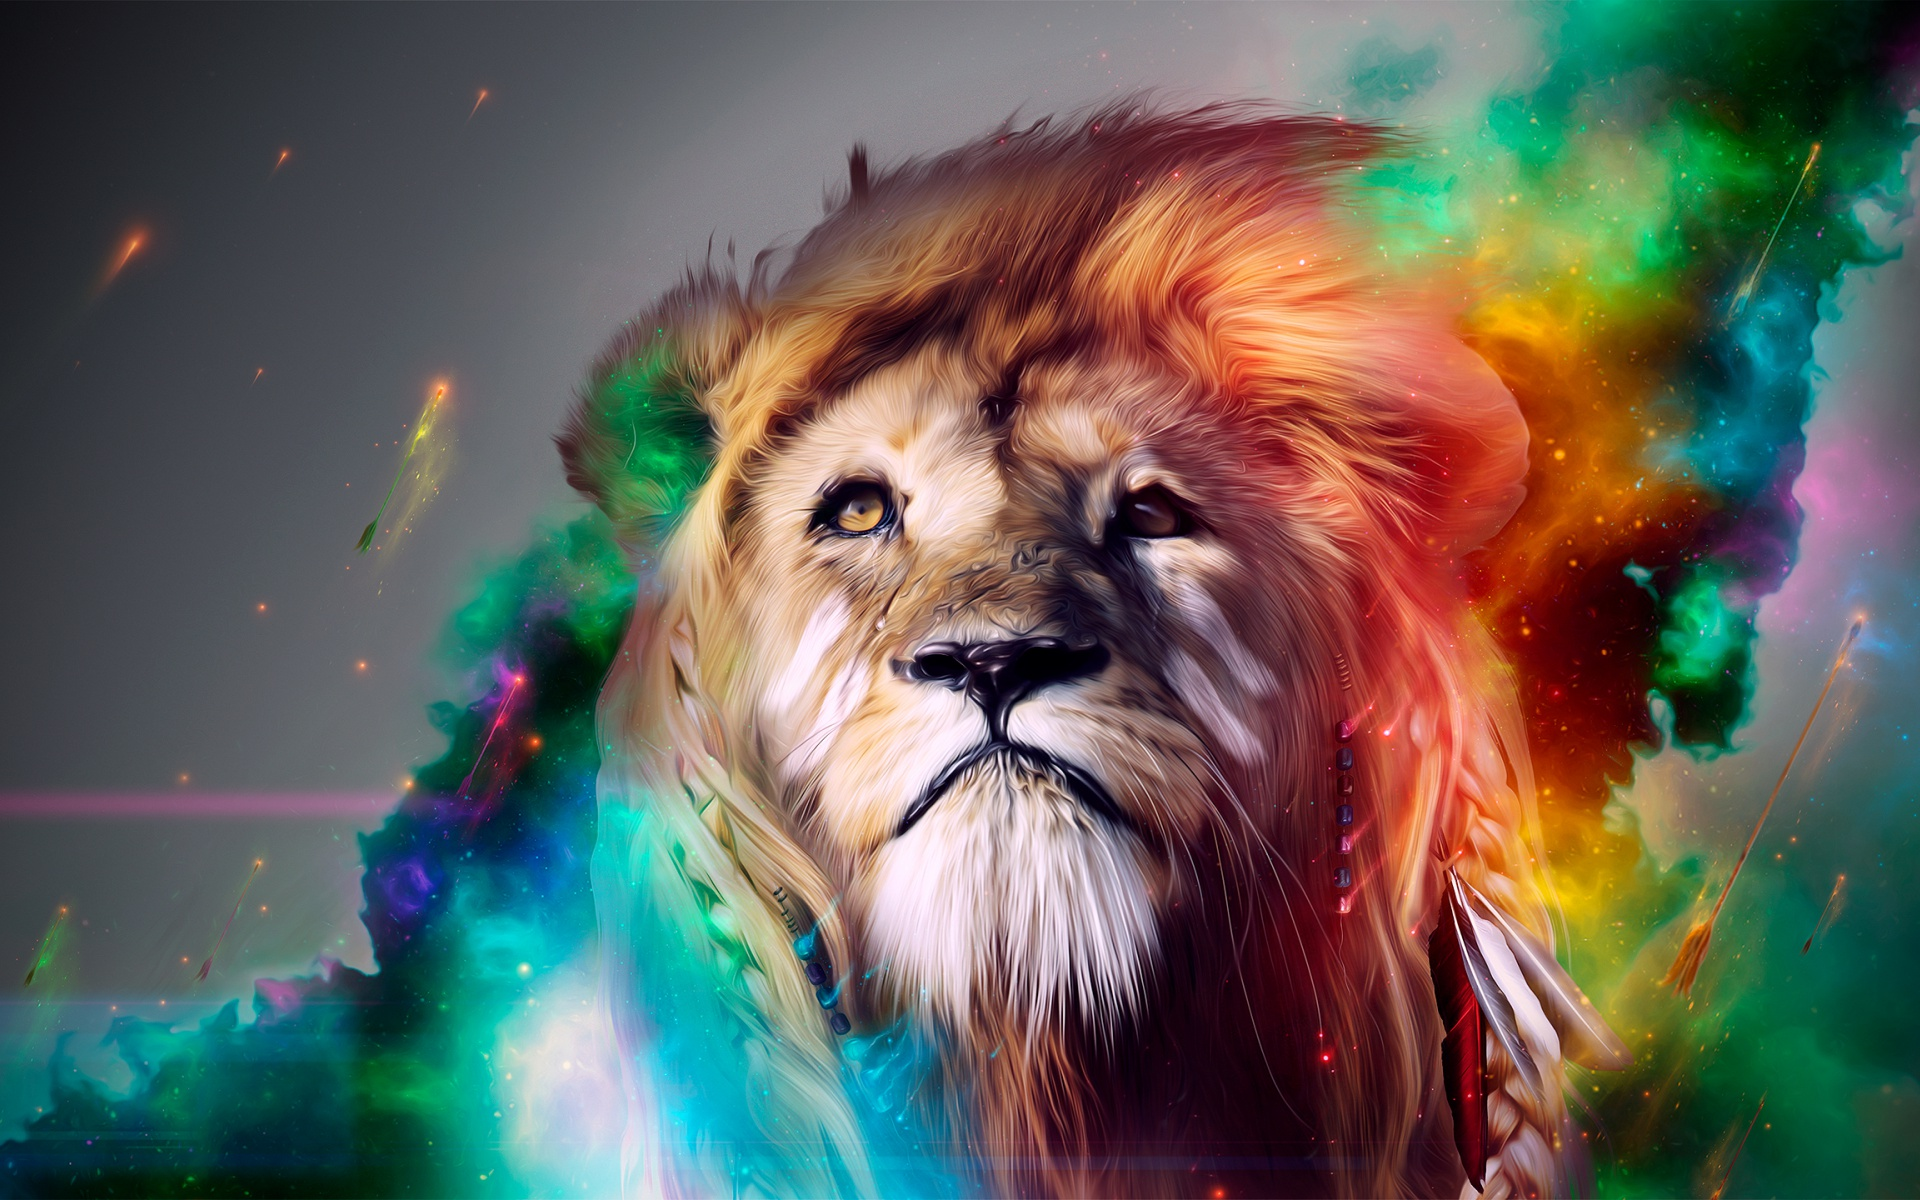 HD Wallpapers Lion Abstract